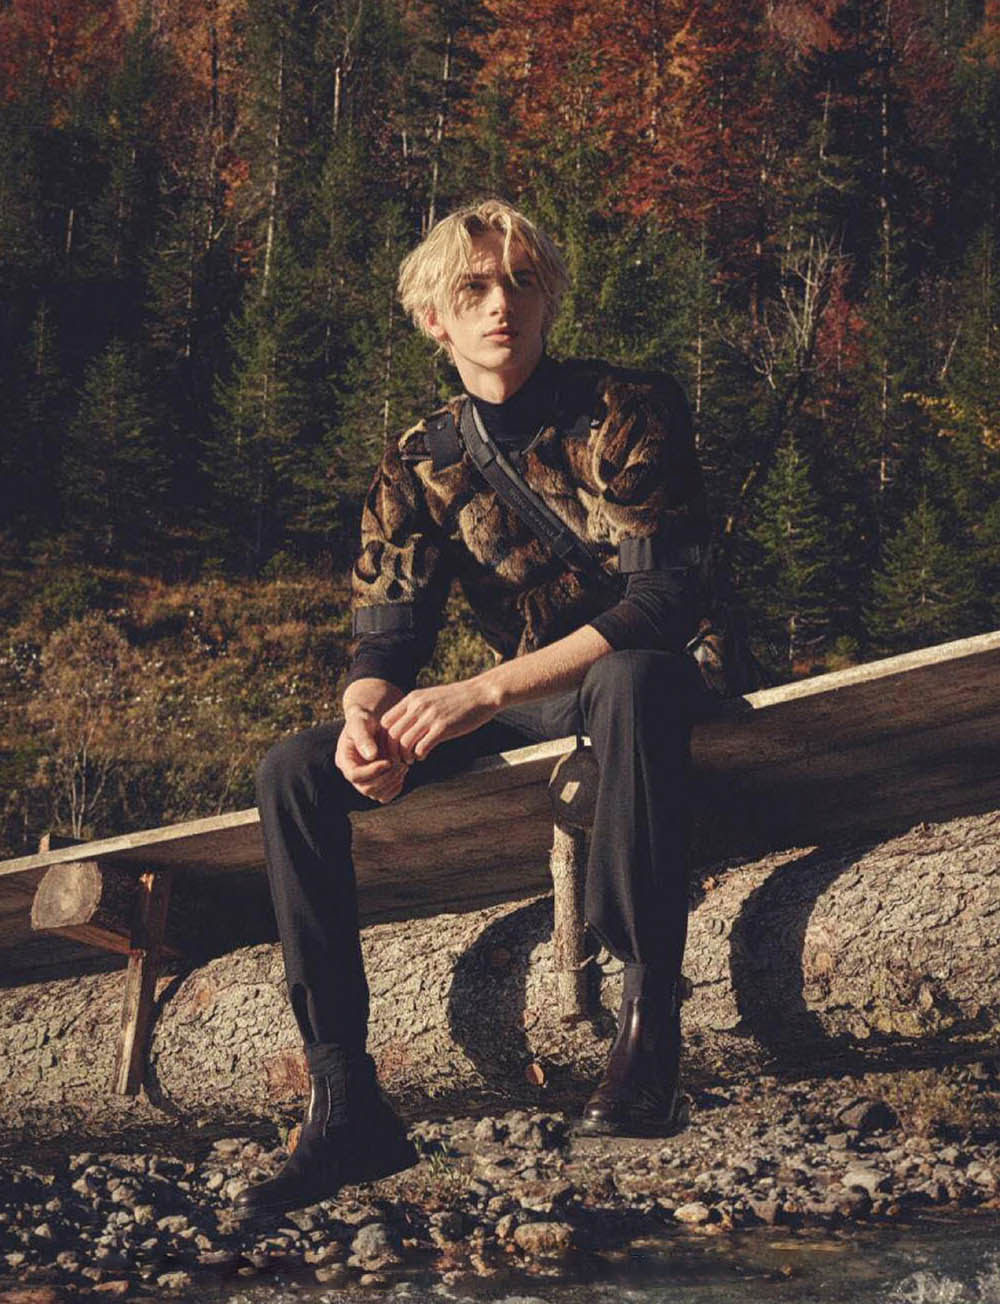 Dominik Sadoch by Markus Jans for GQ Germany December 2019